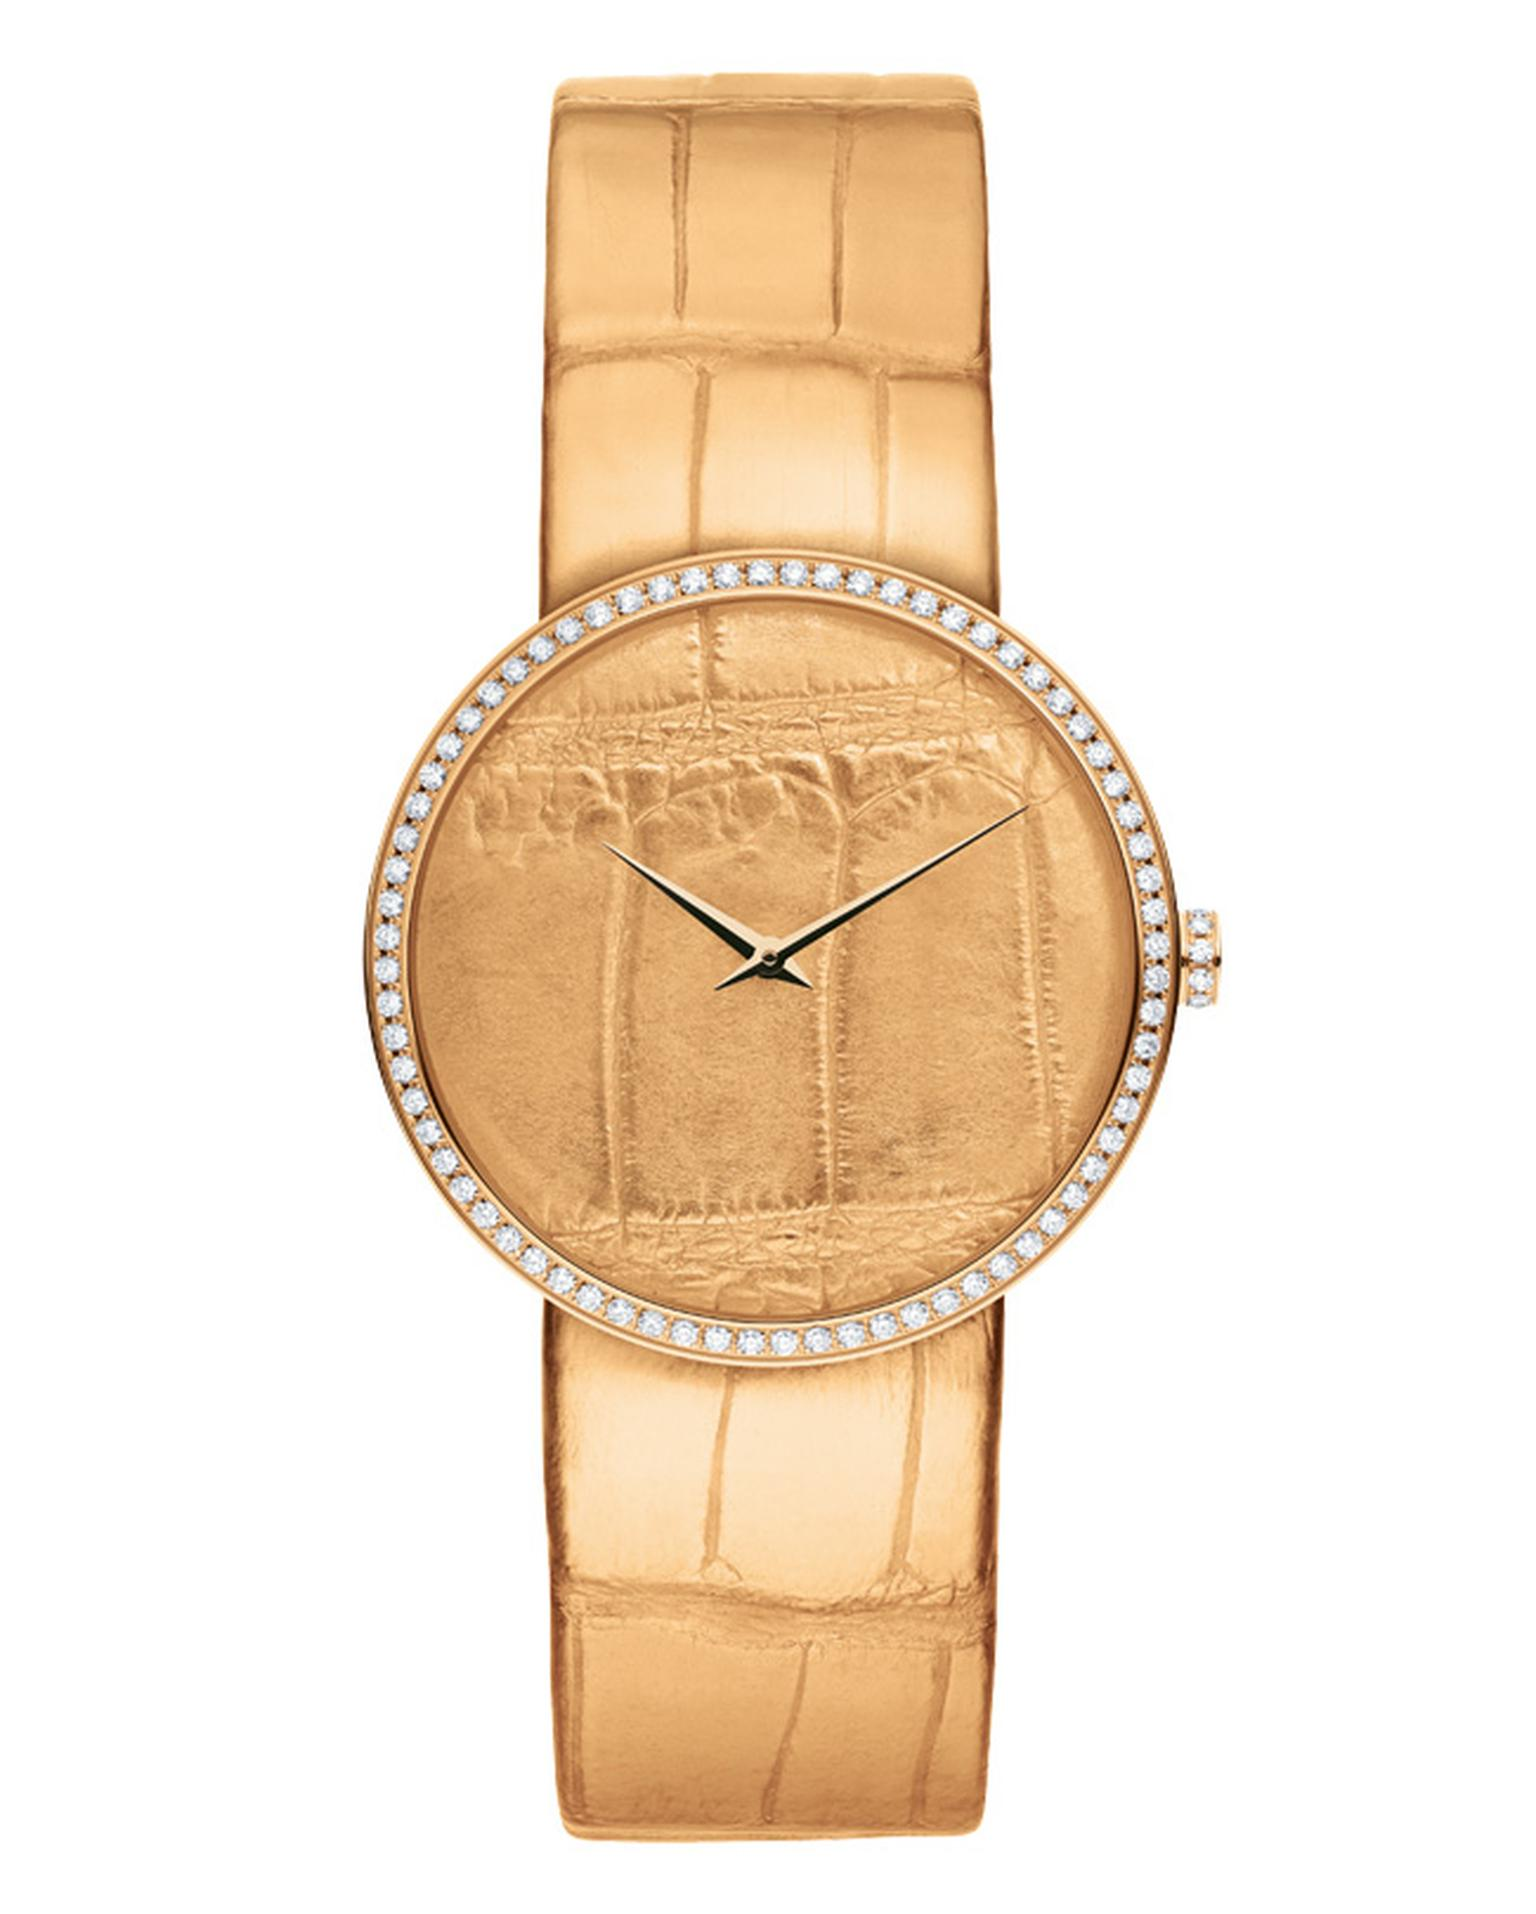 La-D-de-Dior-Alligator-watch-in-pink-gold-and-diamonds_20140512_Main